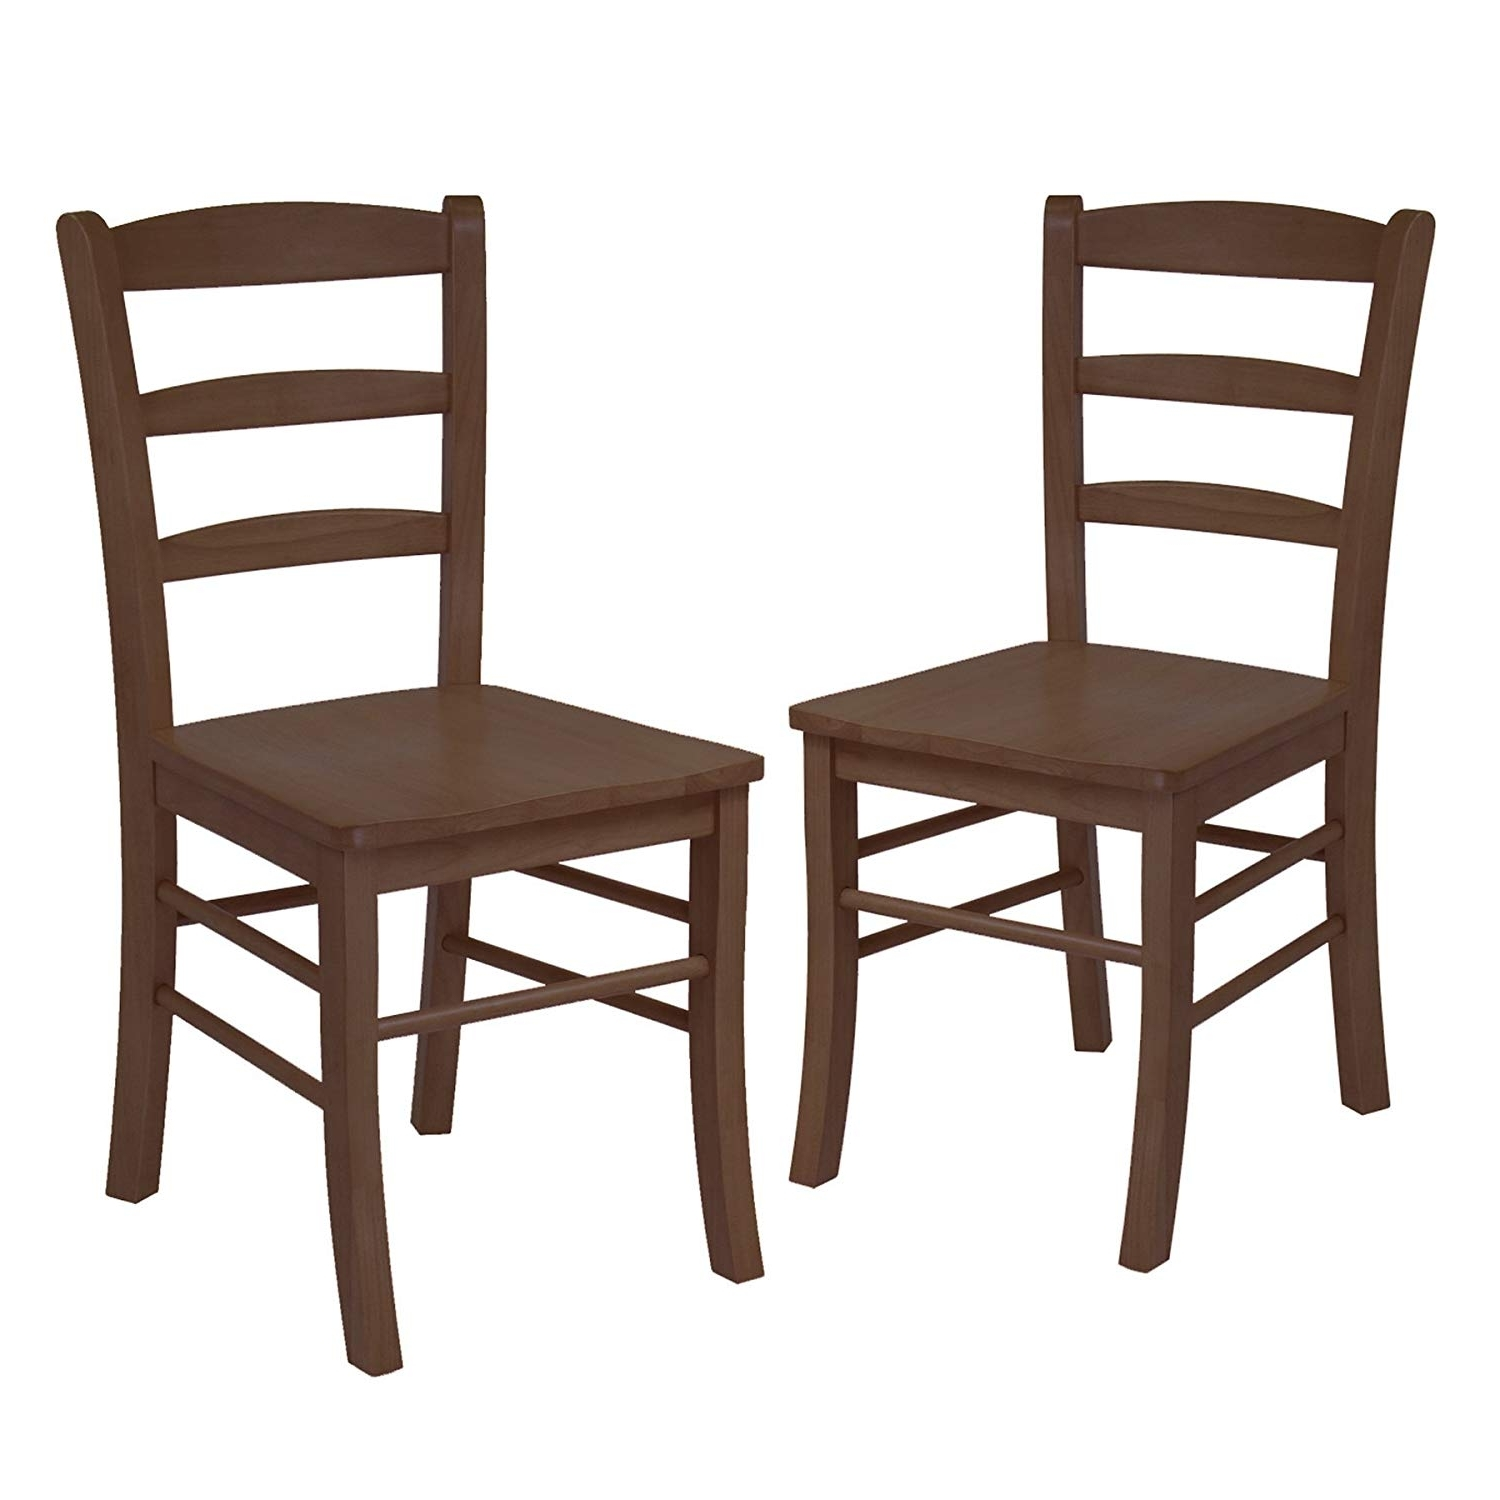 Amazon: Winsome Wood 34232 Benjamin Seating, Natural: Kitchen Intended For Latest Wooden Dining Sets (View 22 of 25)